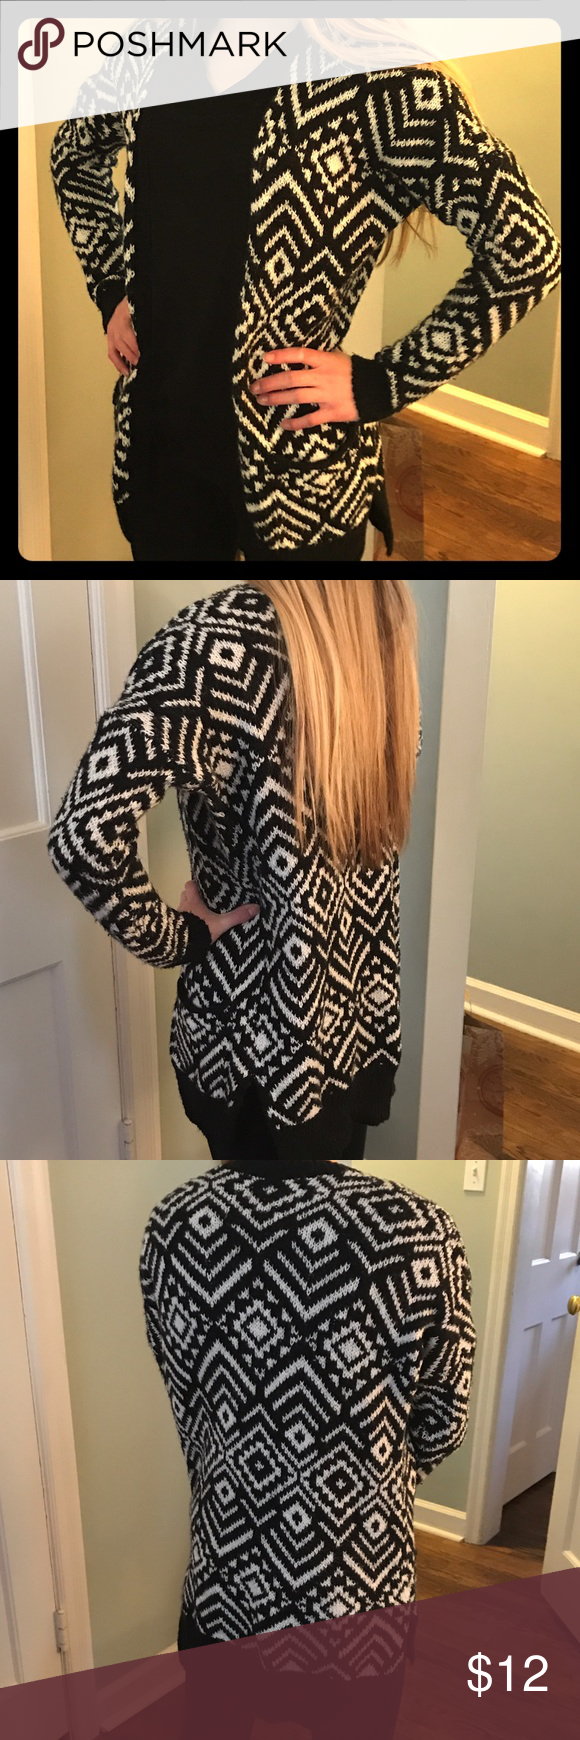 Abercrombie Kids Aztec Print Sweater, Girls Large Cute Black and White Aztec Sweater. Great used condition purchased last season. Approximately 2 in side split and back slightly longer than front/sides. Super cute, my daughter just doesn't reach for it anymore and I want someone to enjoy it! abercrombie kids Shirts & Tops Sweaters